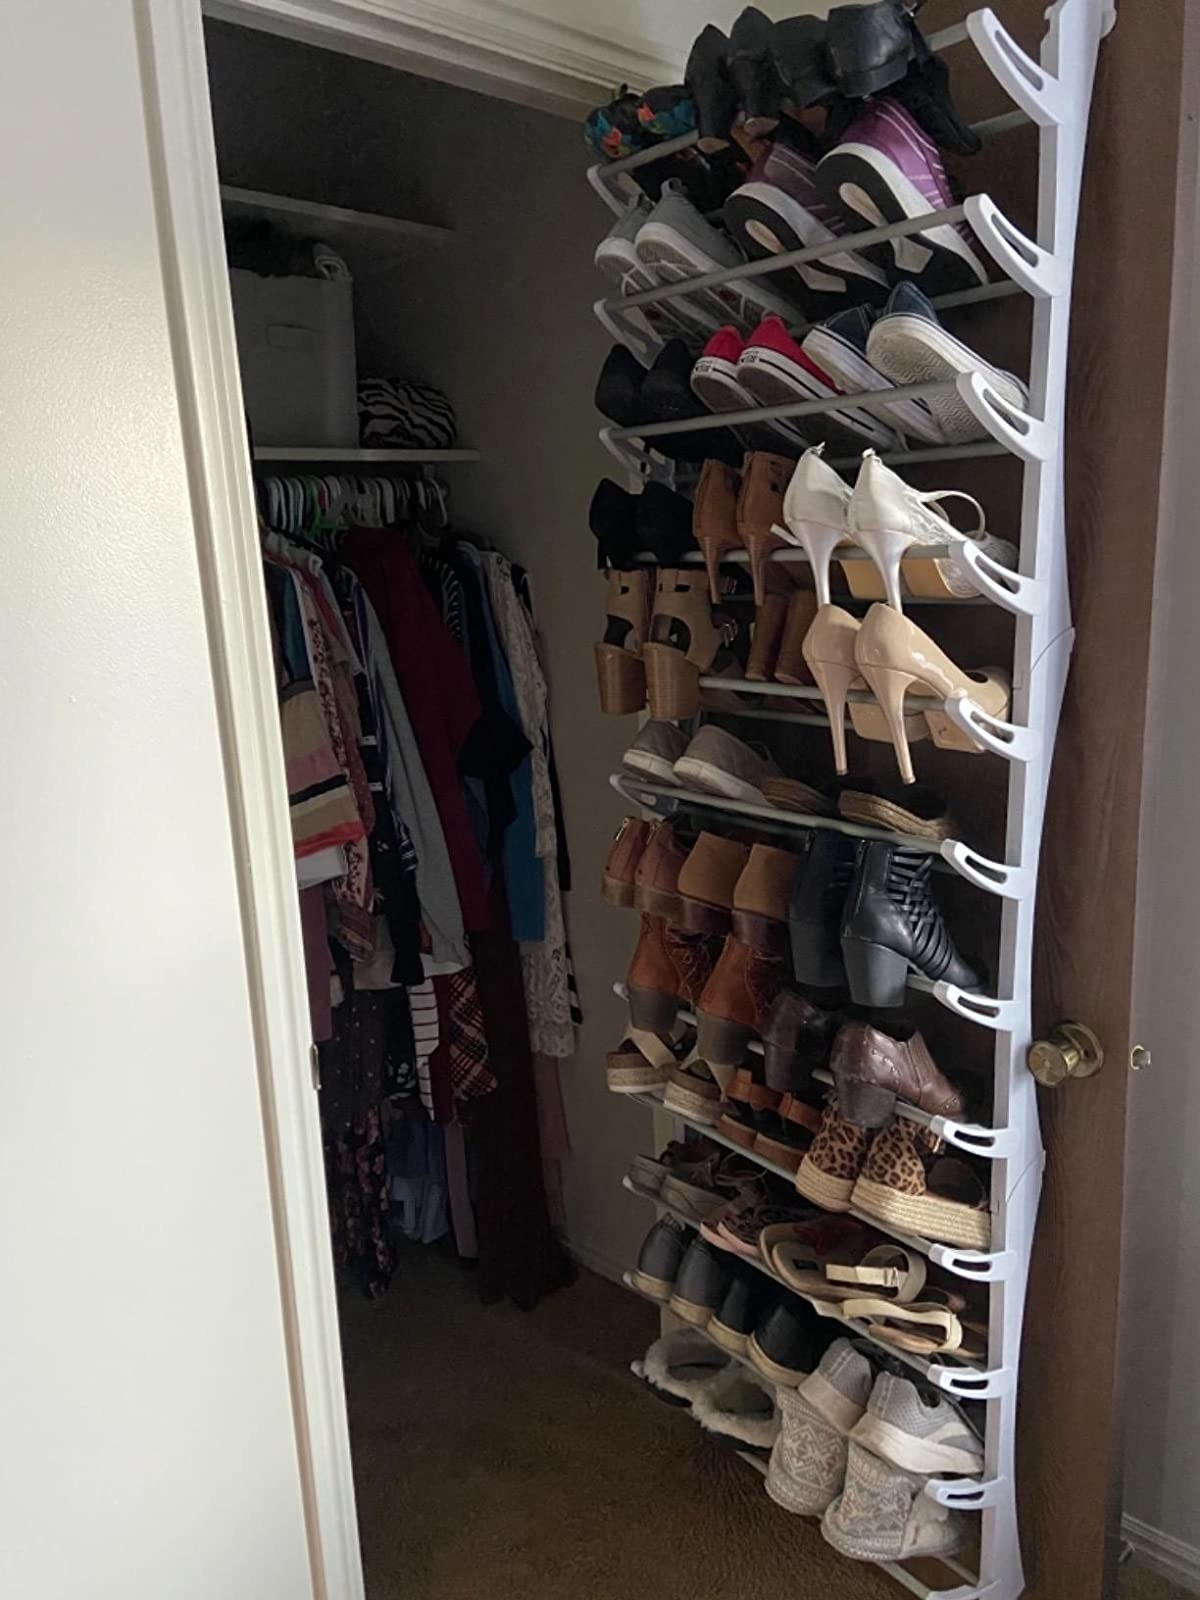 reviewer pic of the shoe rack on the back of a closet door filled with lots of pairs of shoes